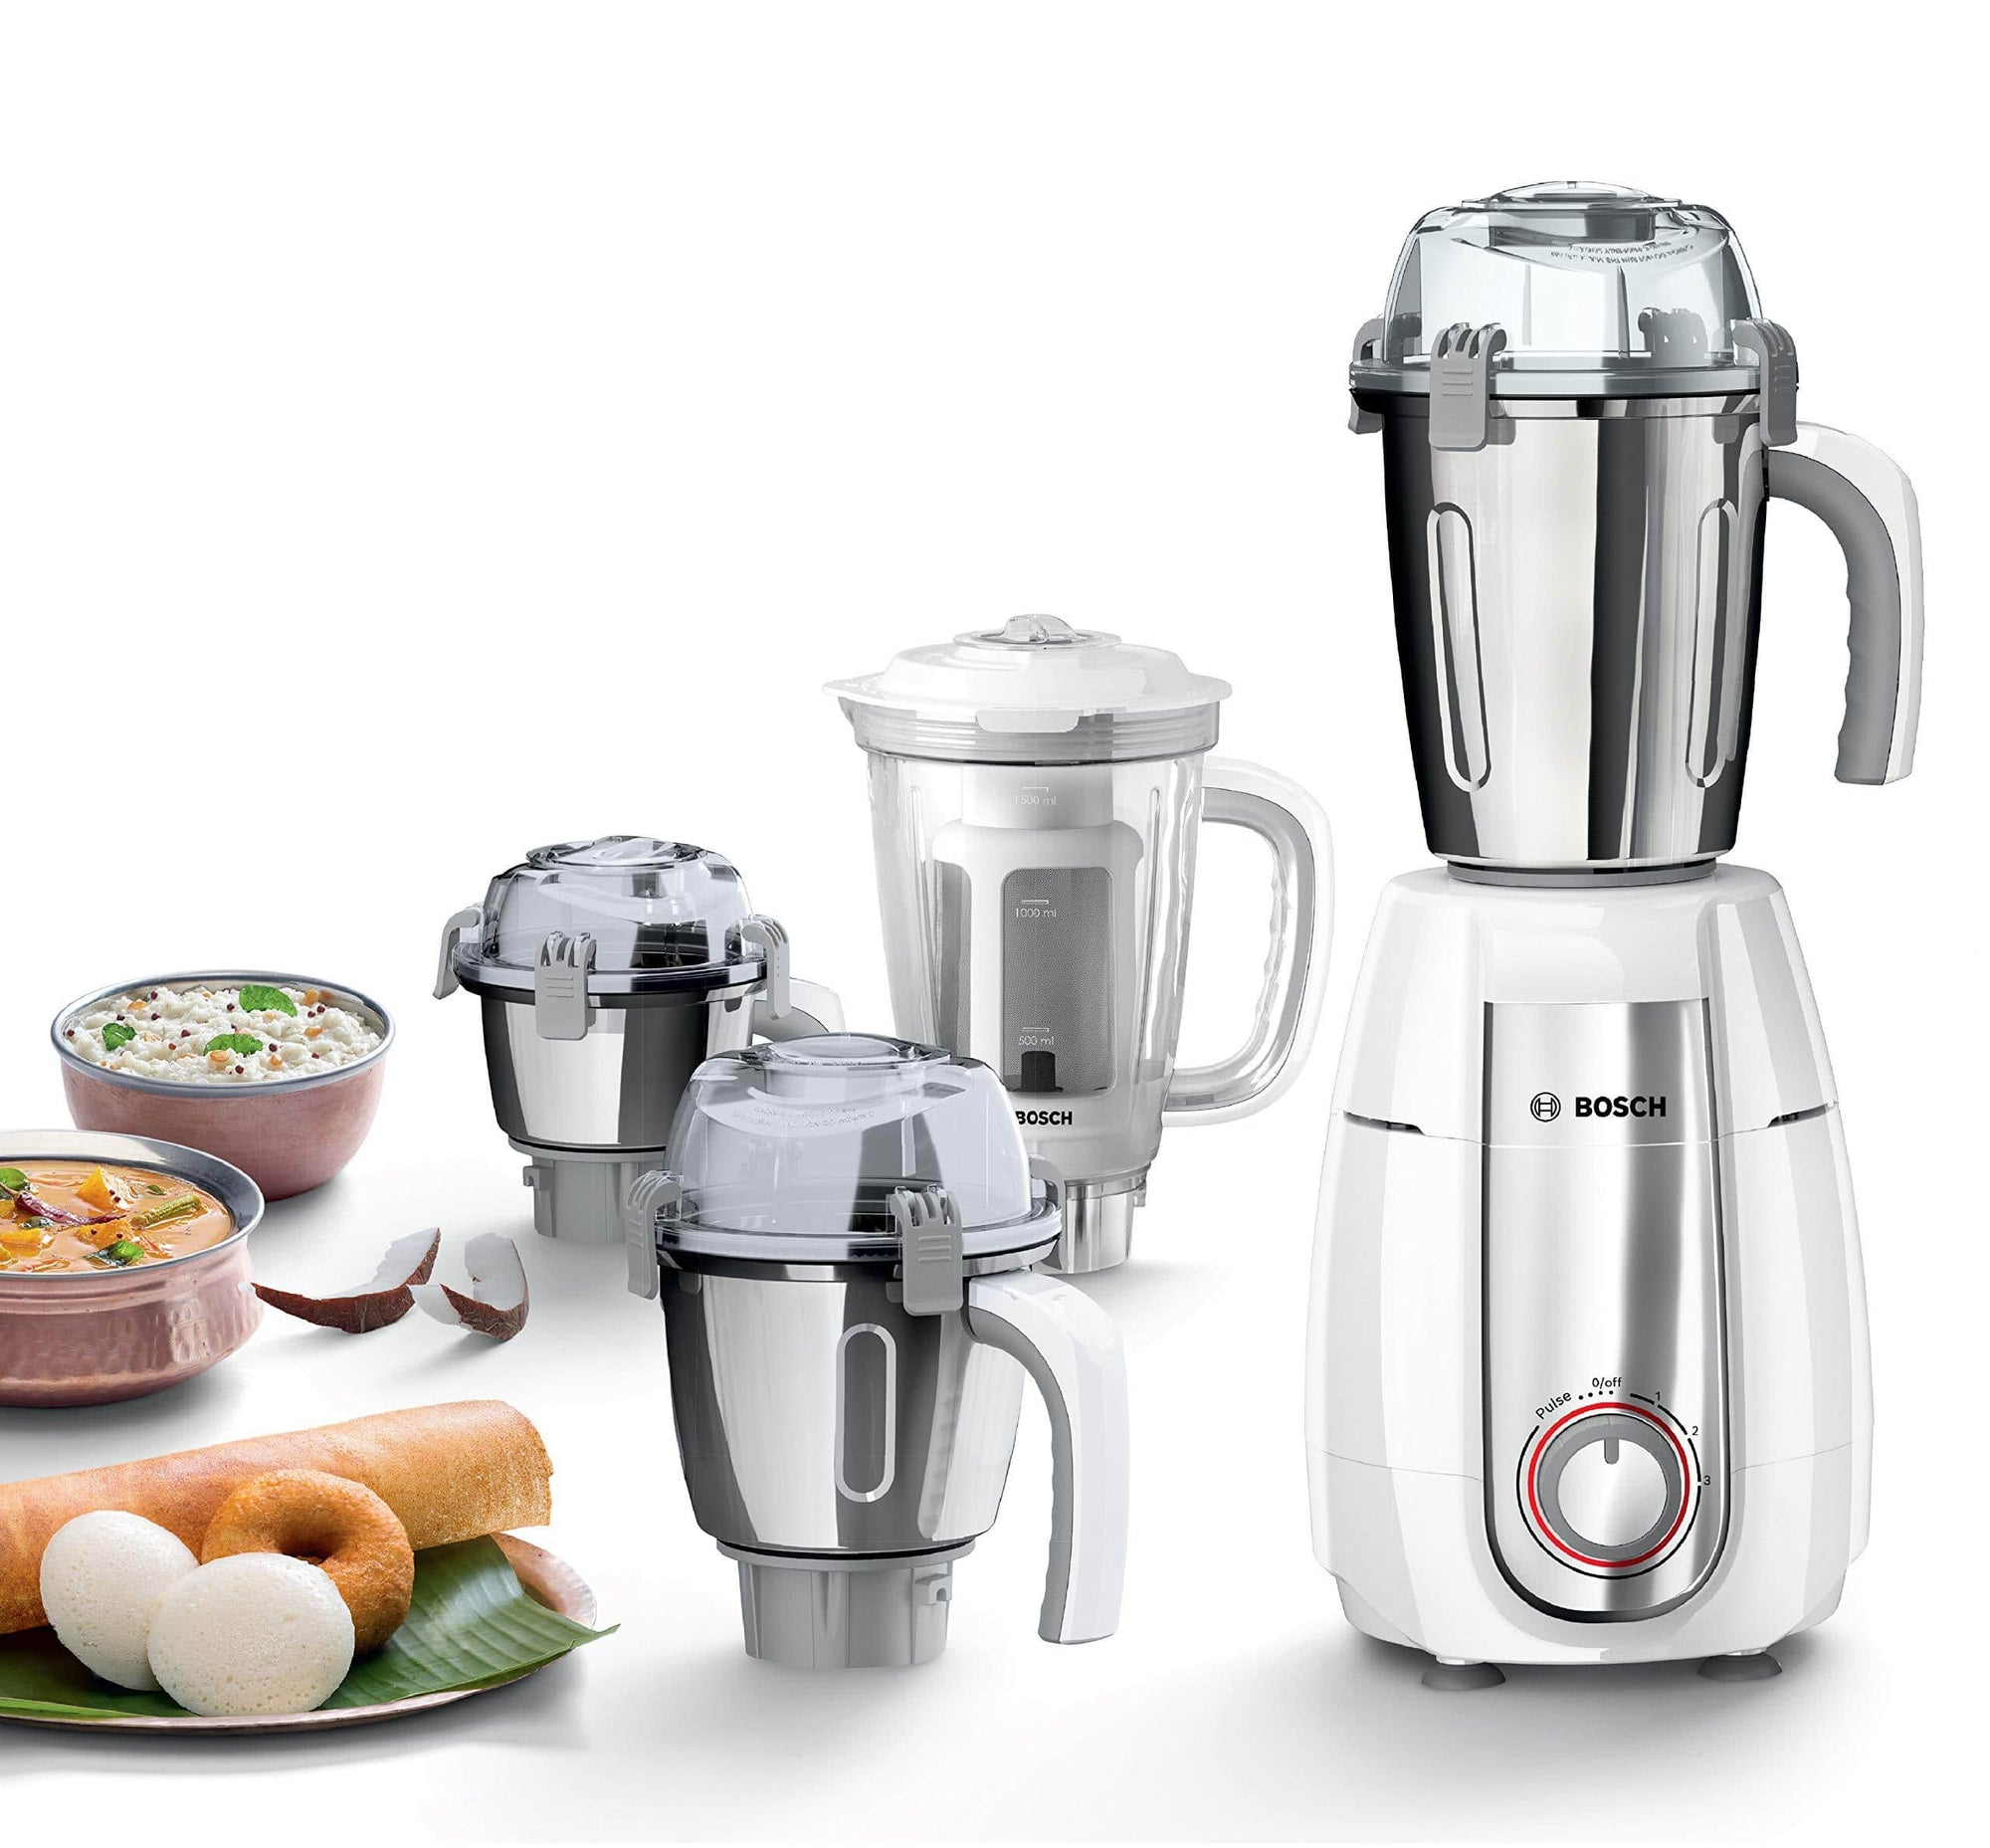 Bosch TrueMixx Style Mixer Grinder 750 Watts - MGM6642WIN, White - KITCHEN MART